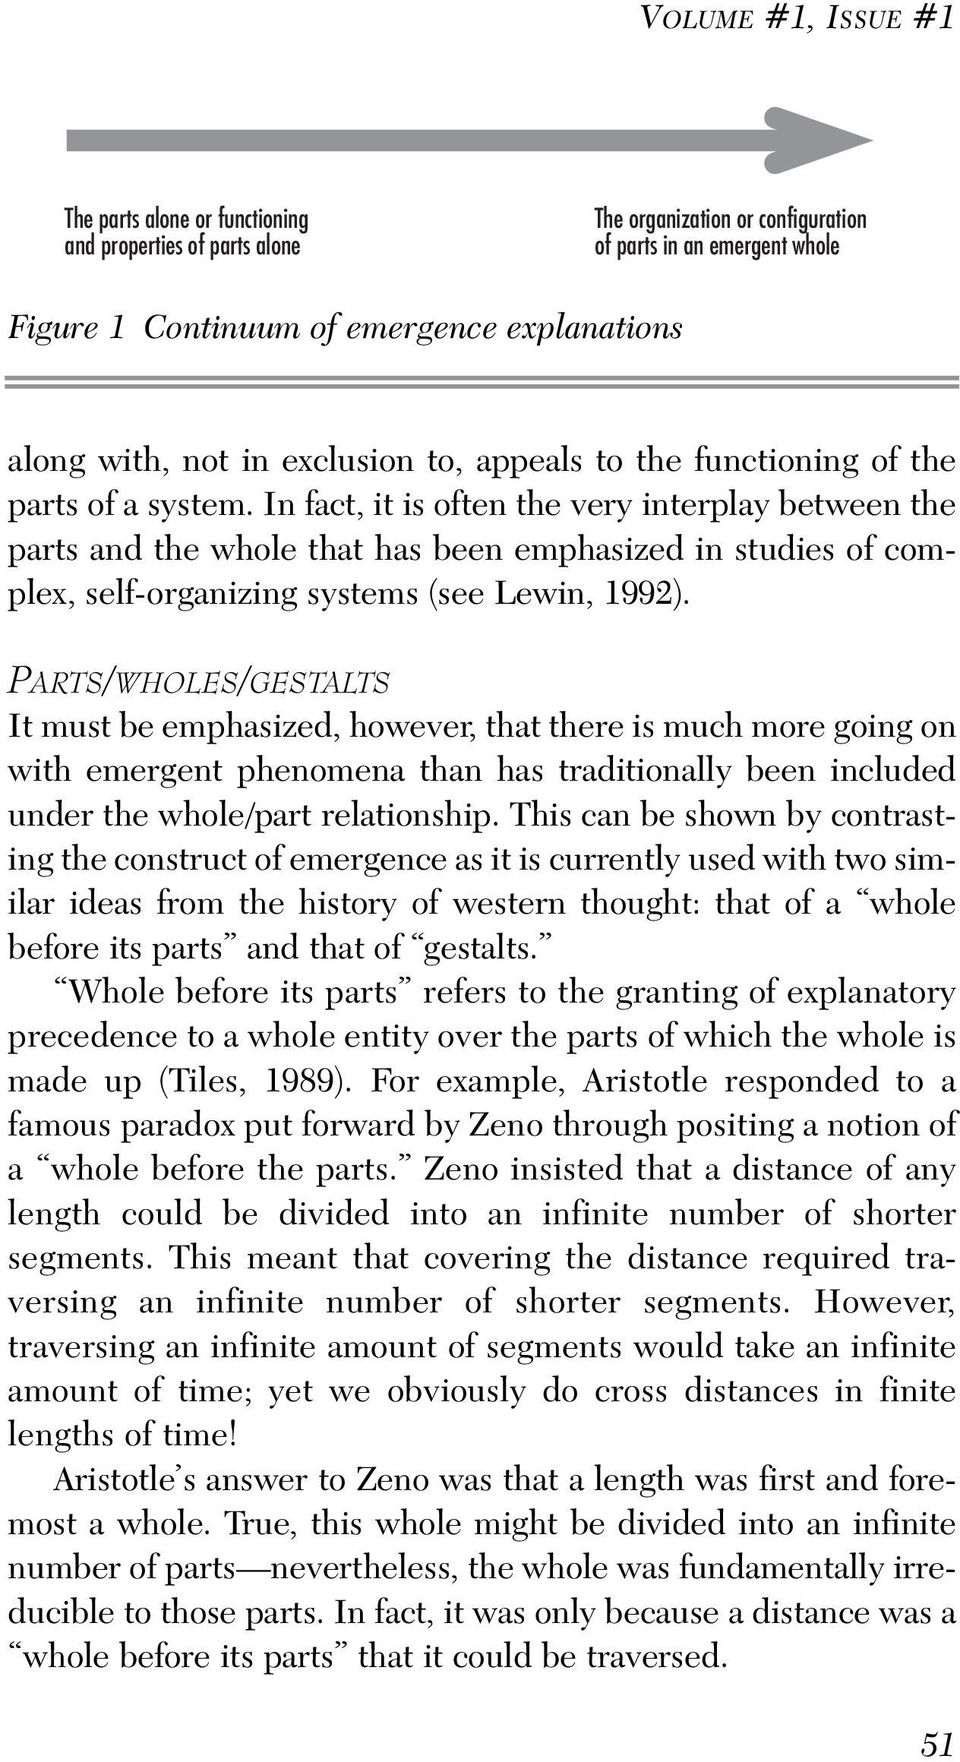 In fact, it is often the very interplay between the parts and the whole that has been emphasized in studies of complex, self-organizing systems (see Lewin, 1992).